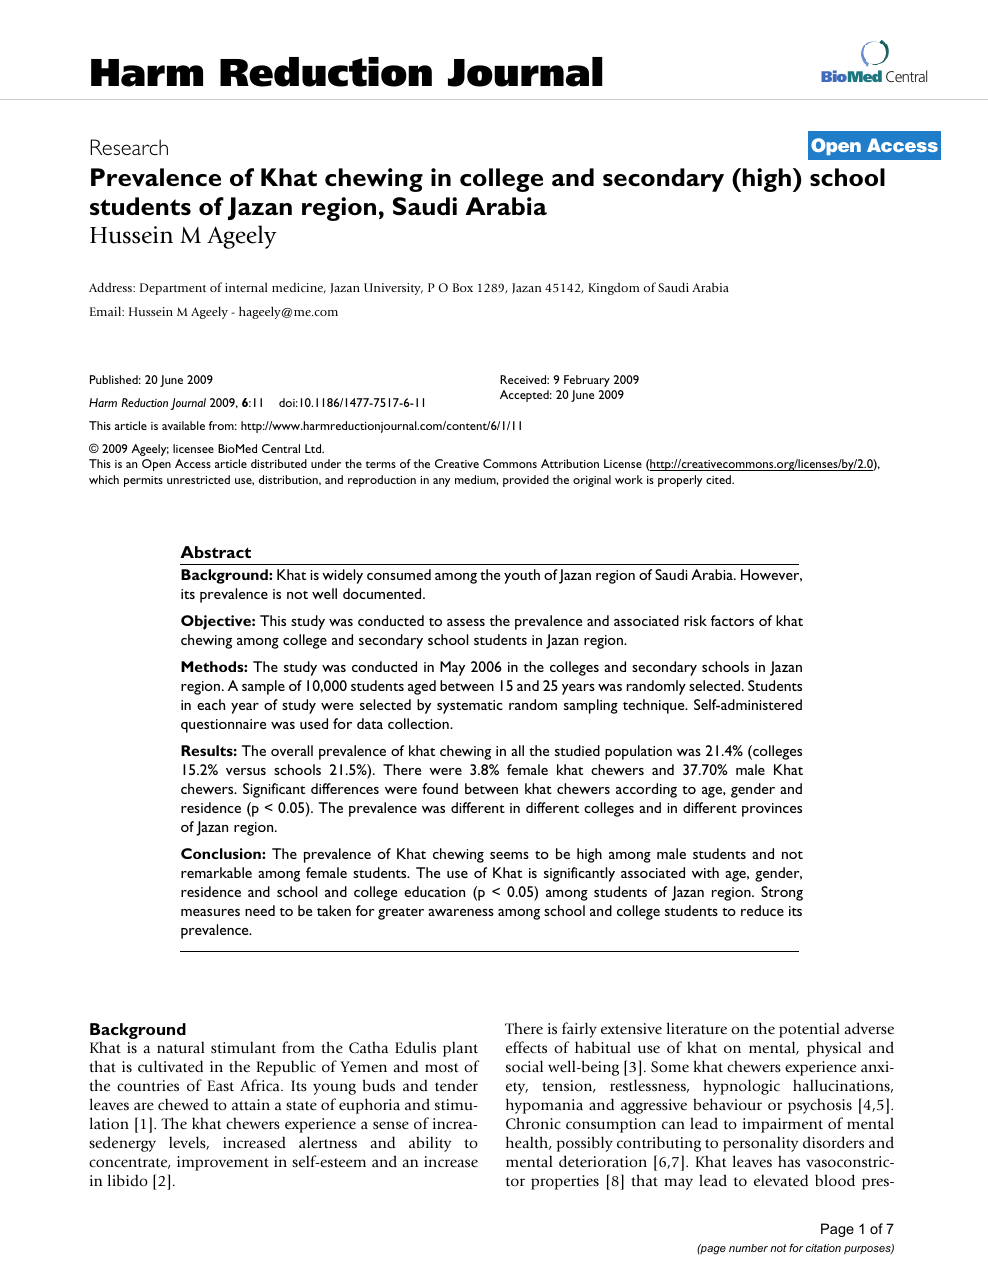 Prevalence of Khat chewing in college and secondary (high) school